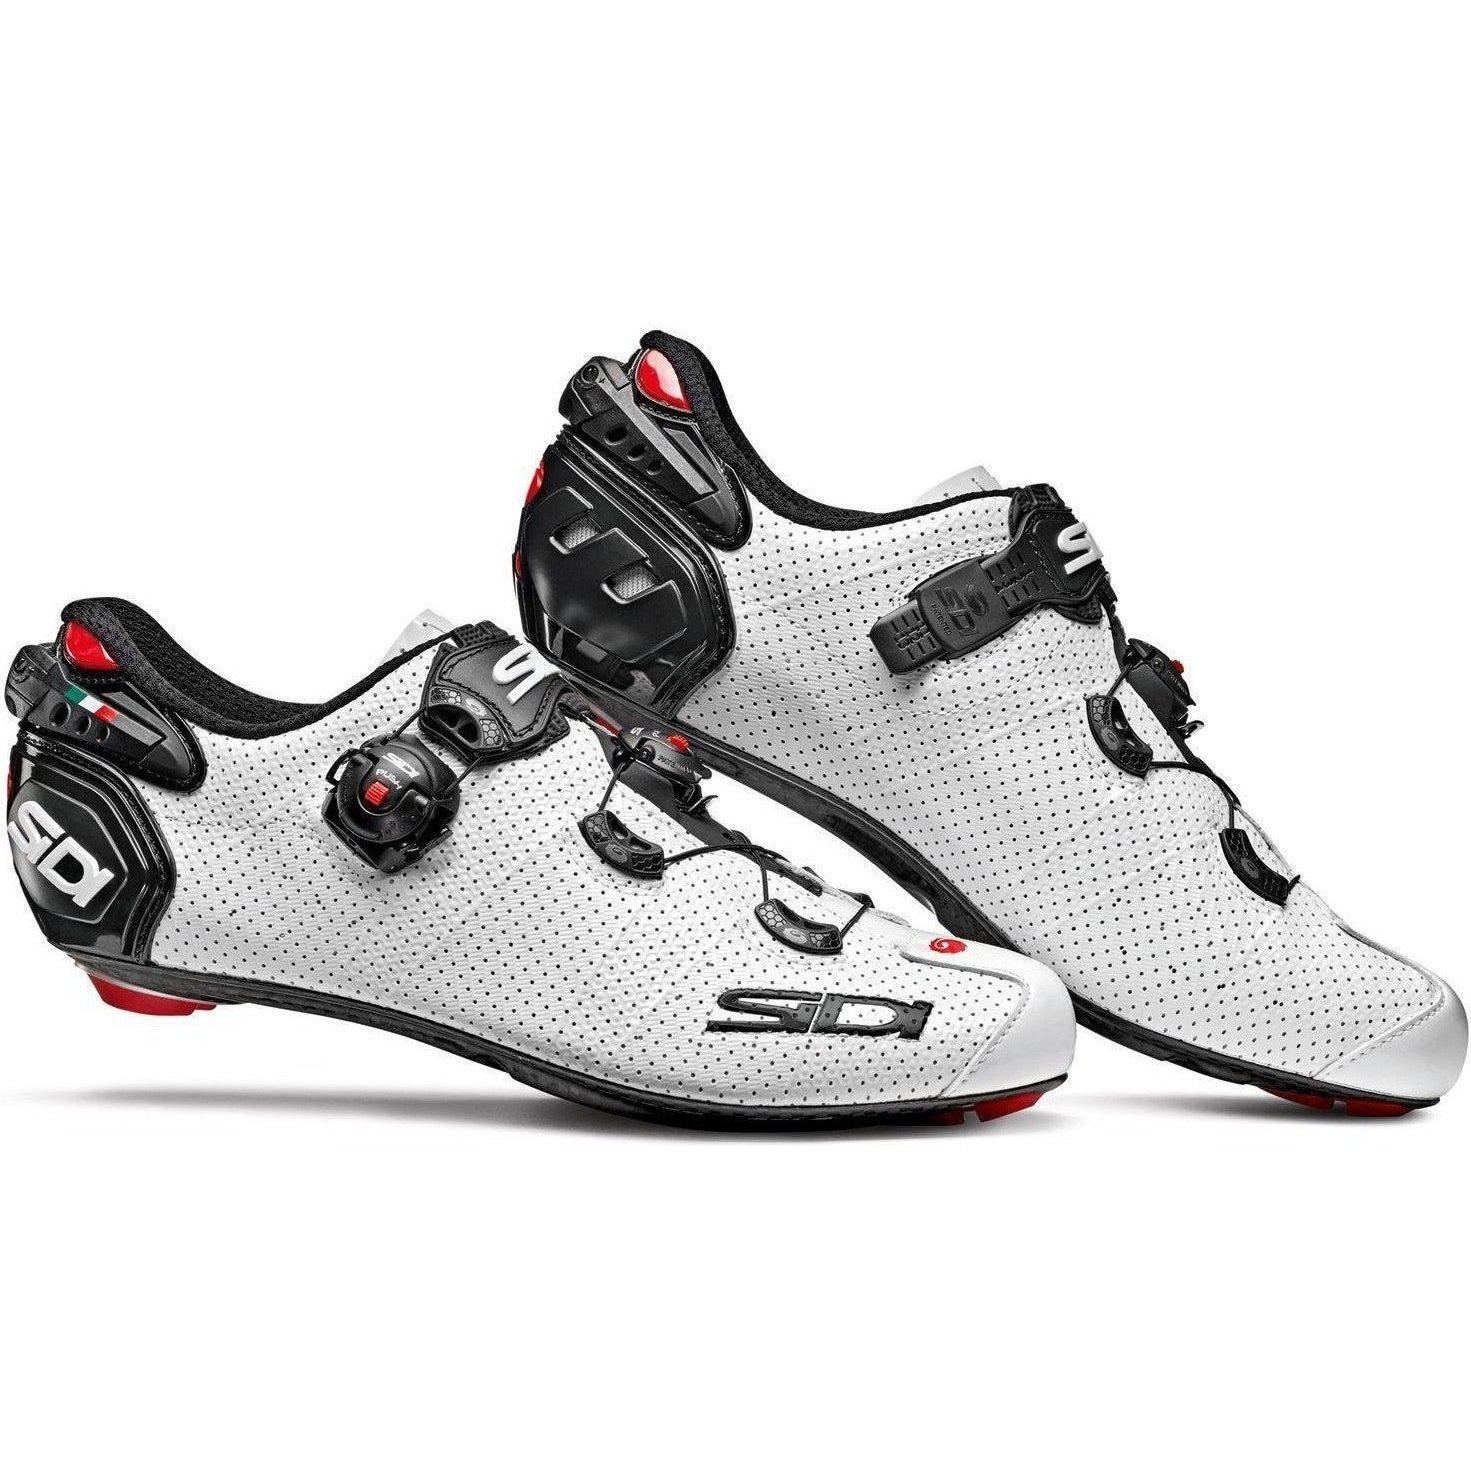 Sidi Wire 2 Air Carbon Road Shoes